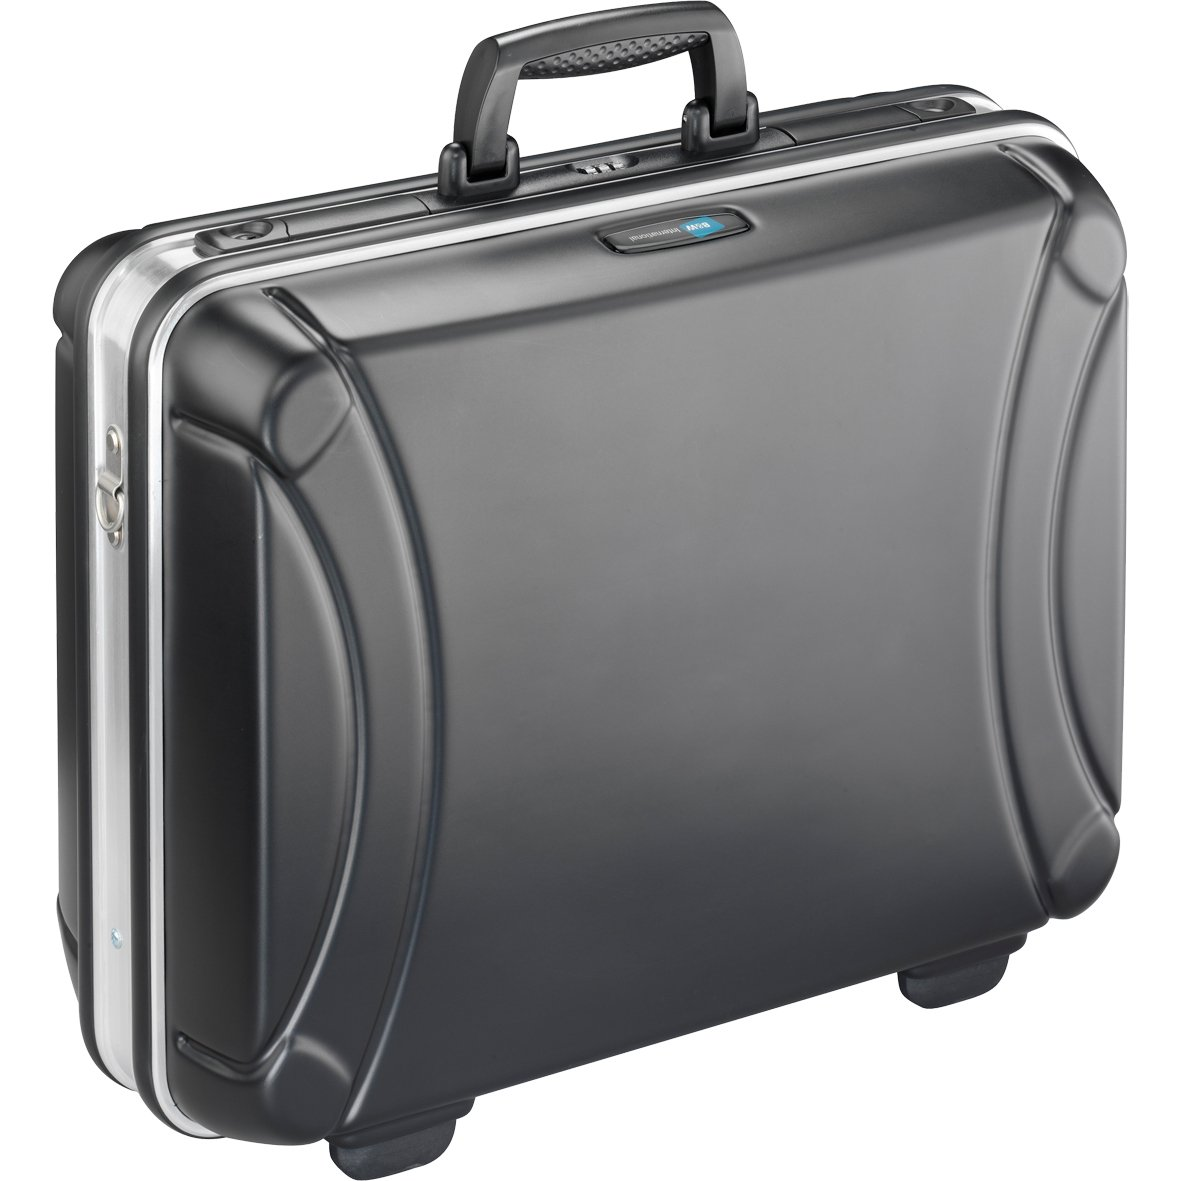 B&W International 115.05/P Barracuda Tool Case with Pockets Flight Ready, Black by B&W International B019T9B51A